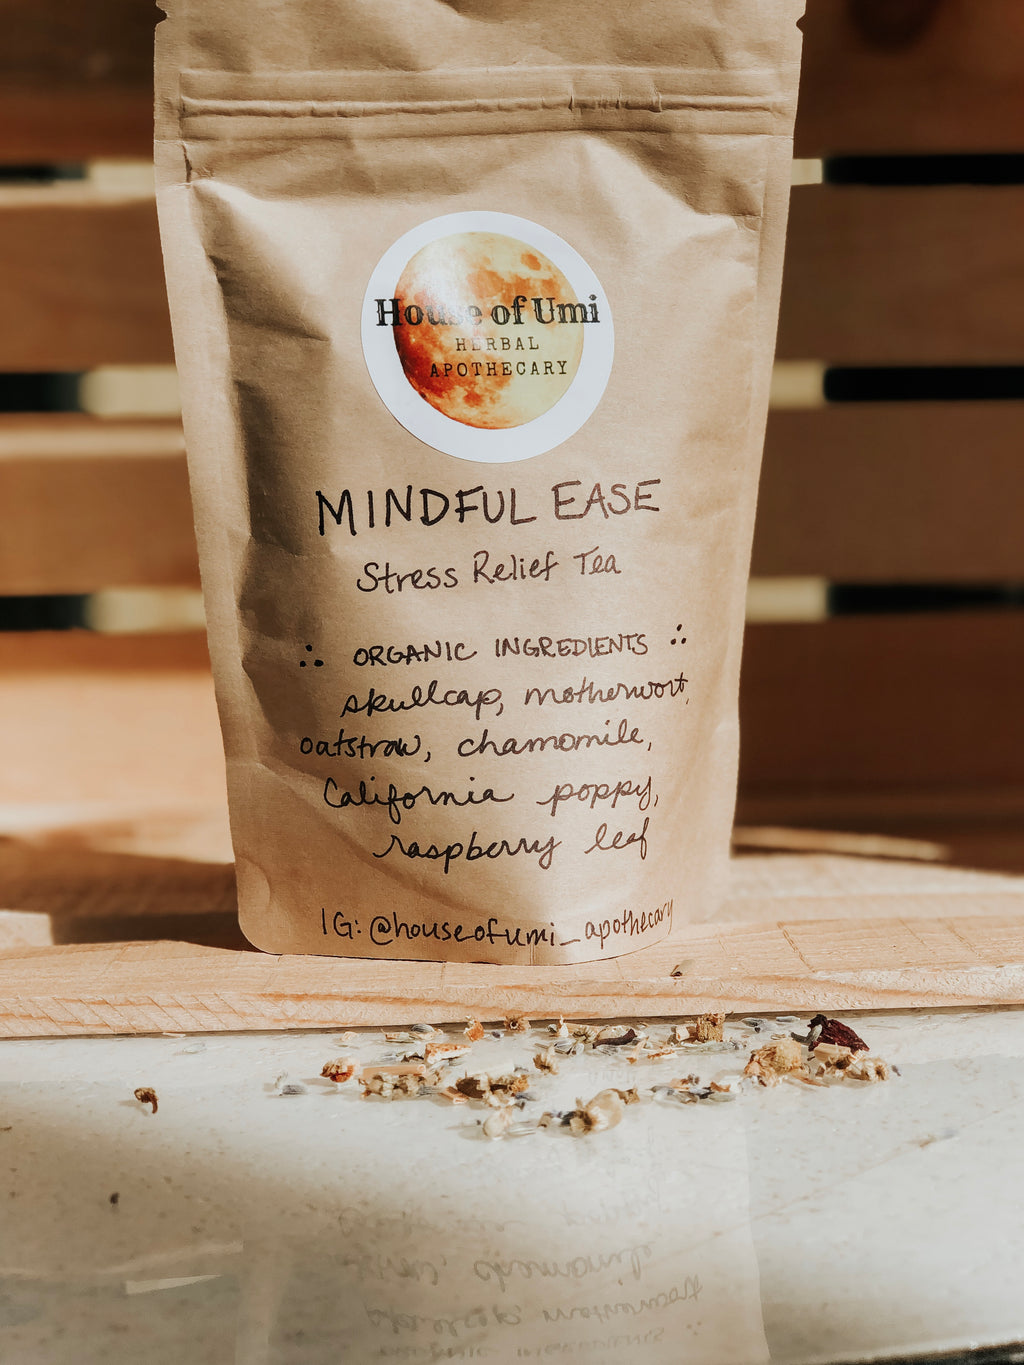 Mindful Ease Stress Relief Tea